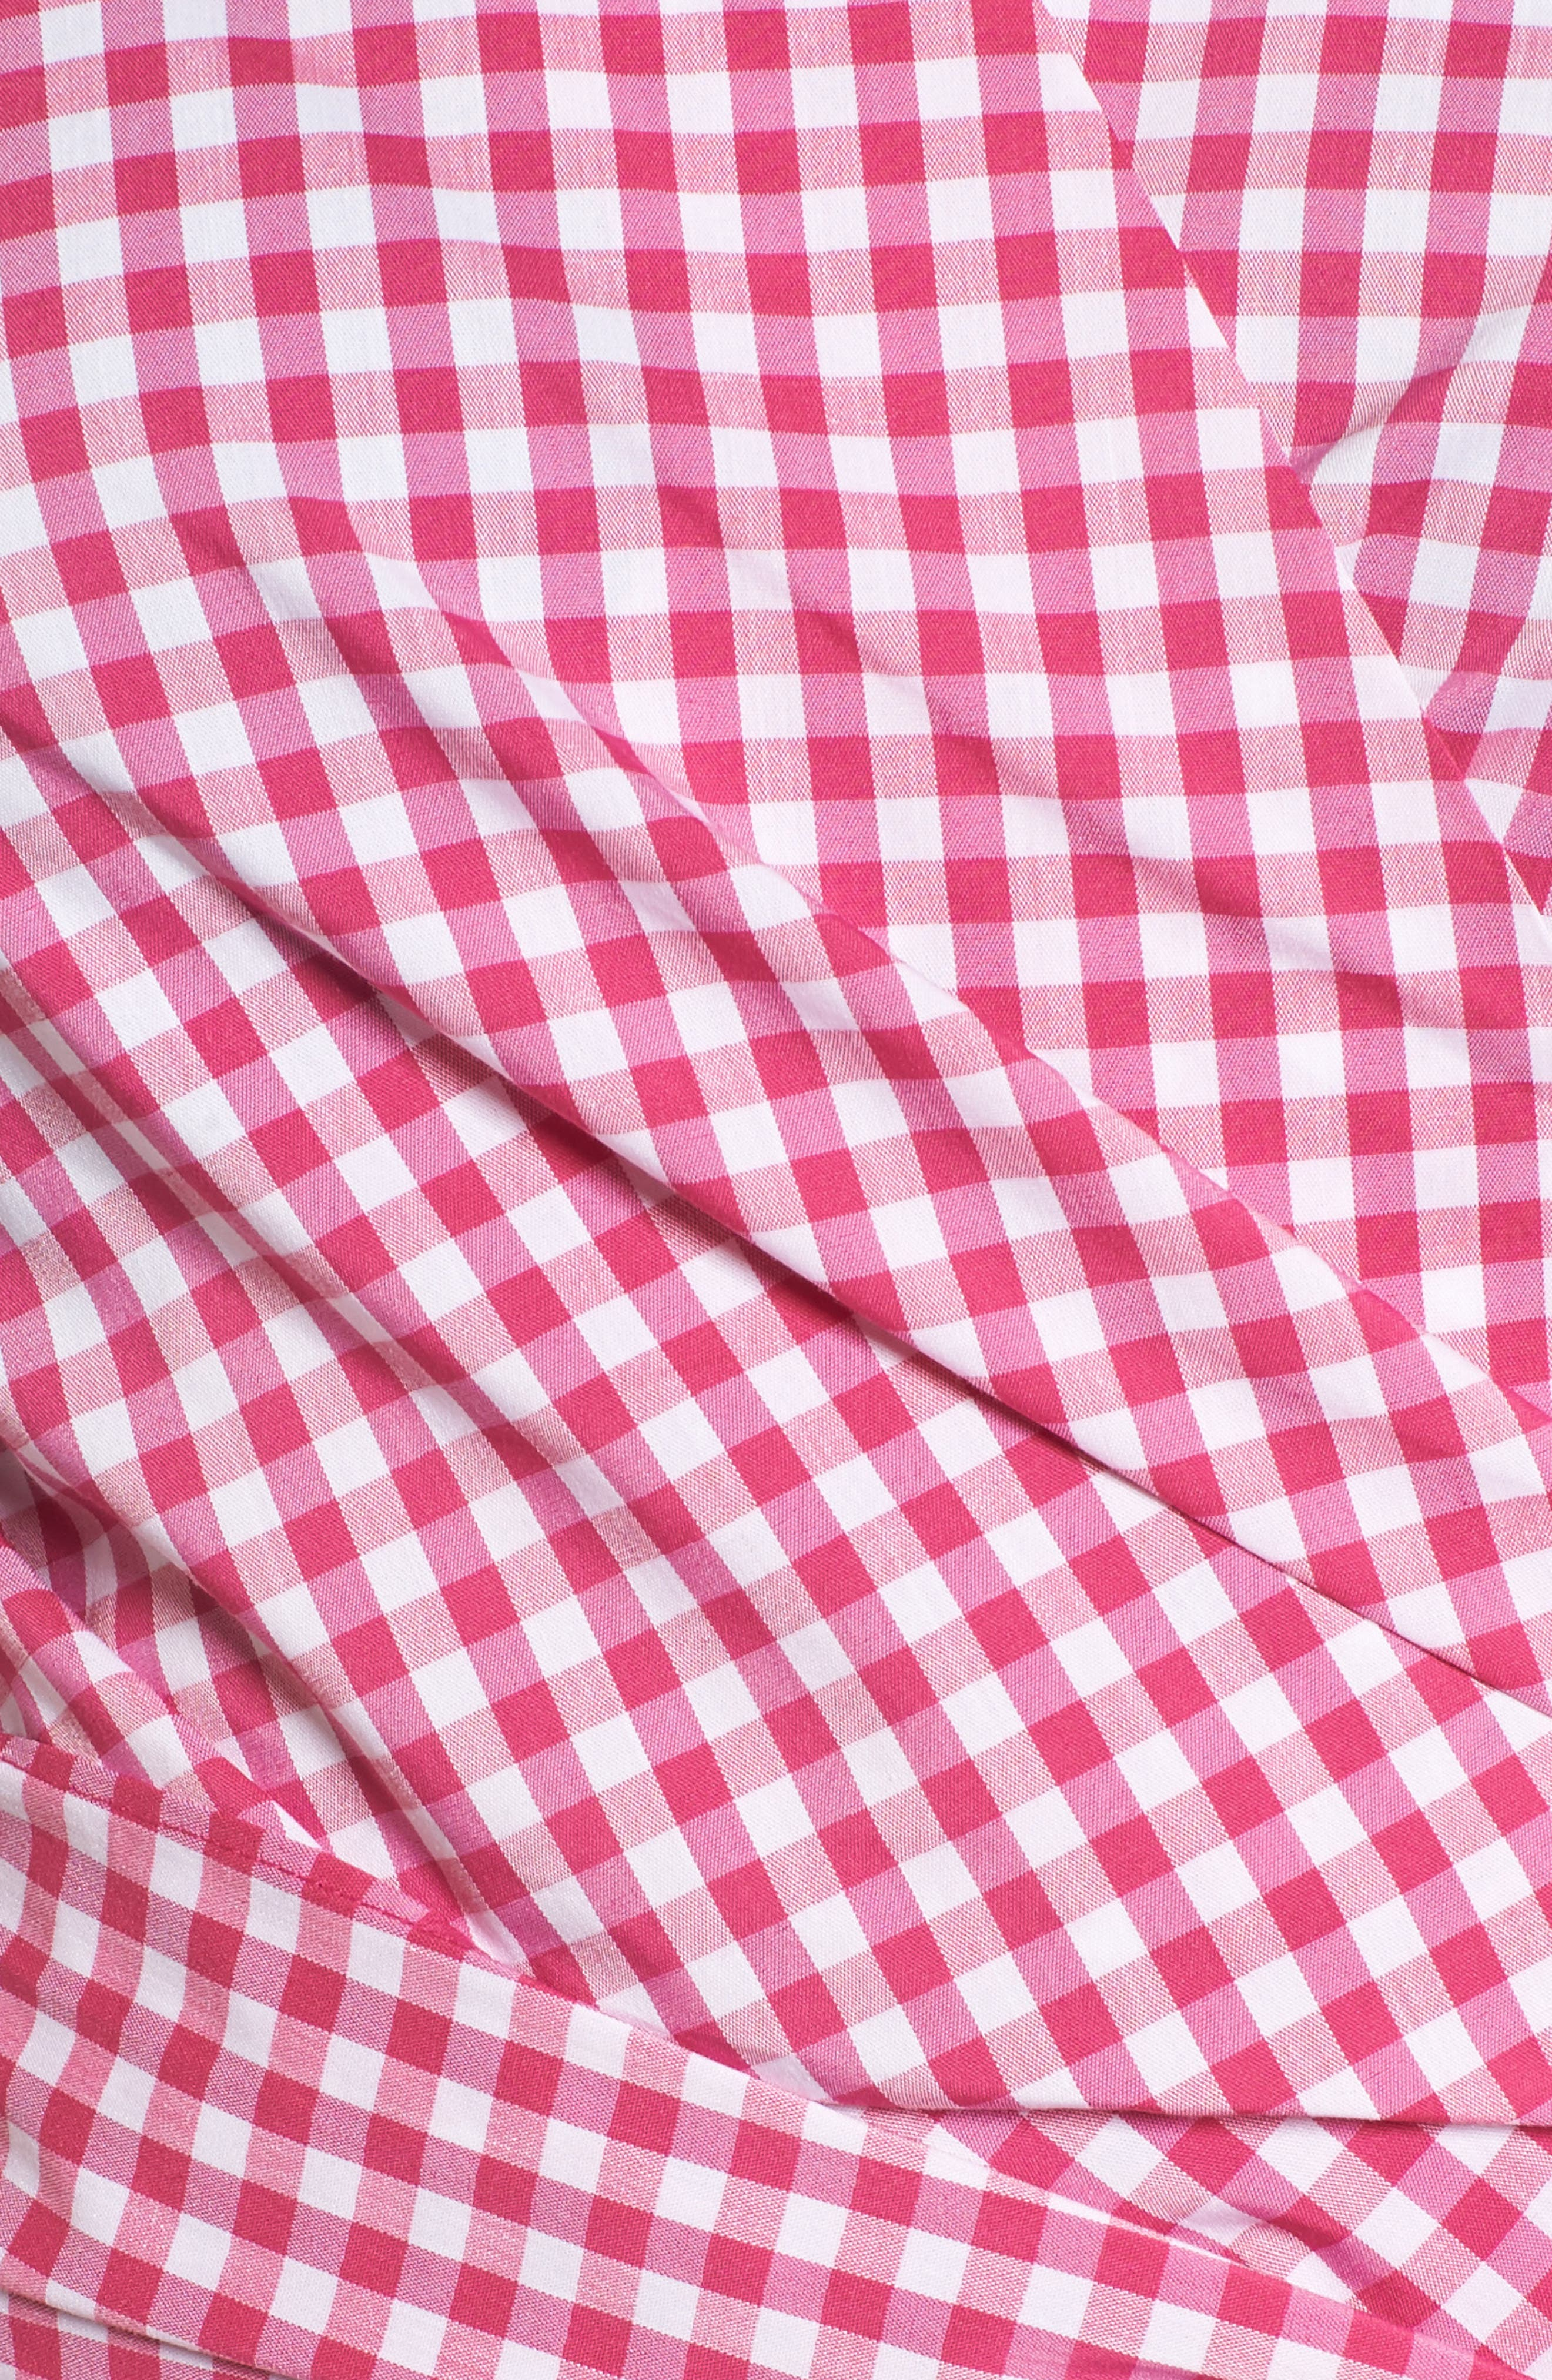 Pintuck Blouson Sleeve Wrap Top,                             Alternate thumbnail 5, color,                             Pink- White Gingham